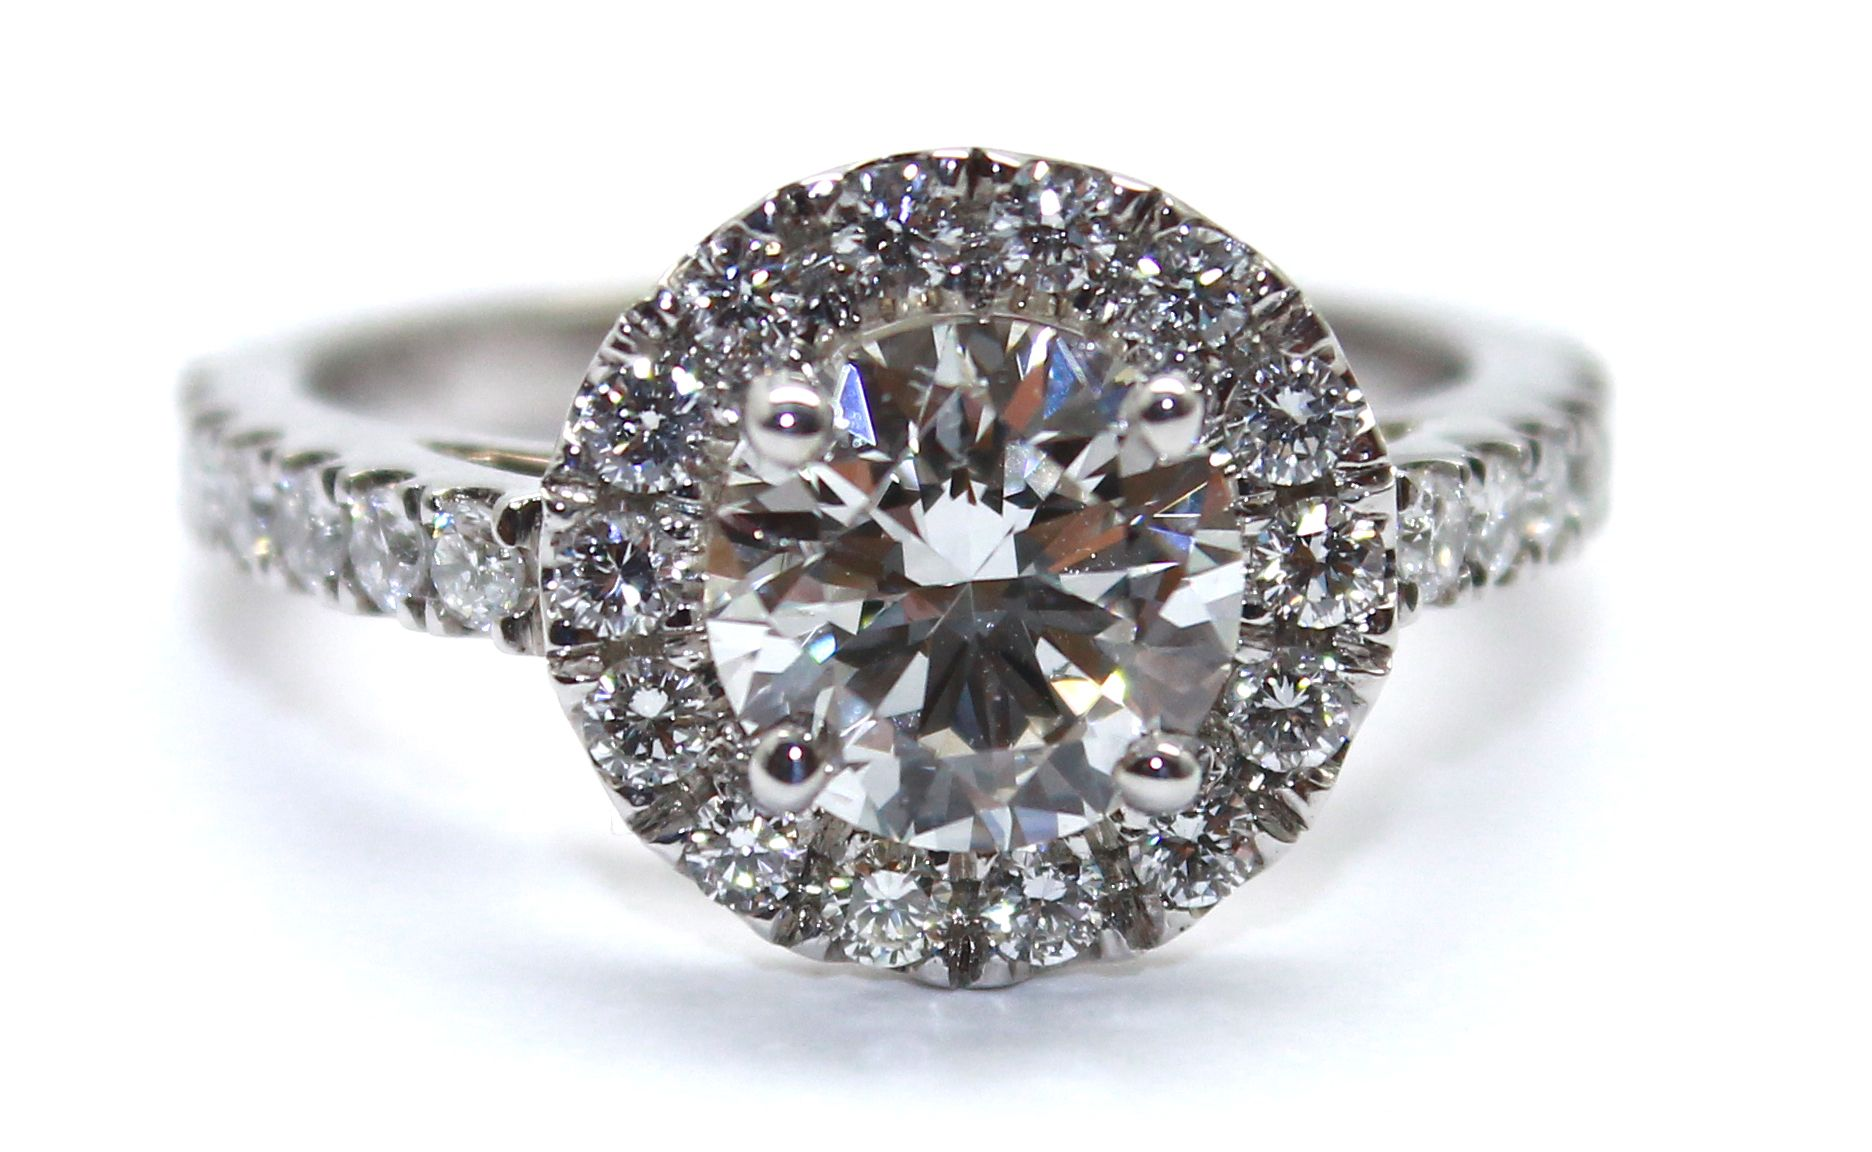 One of the many stunning diamond engagement rings we make